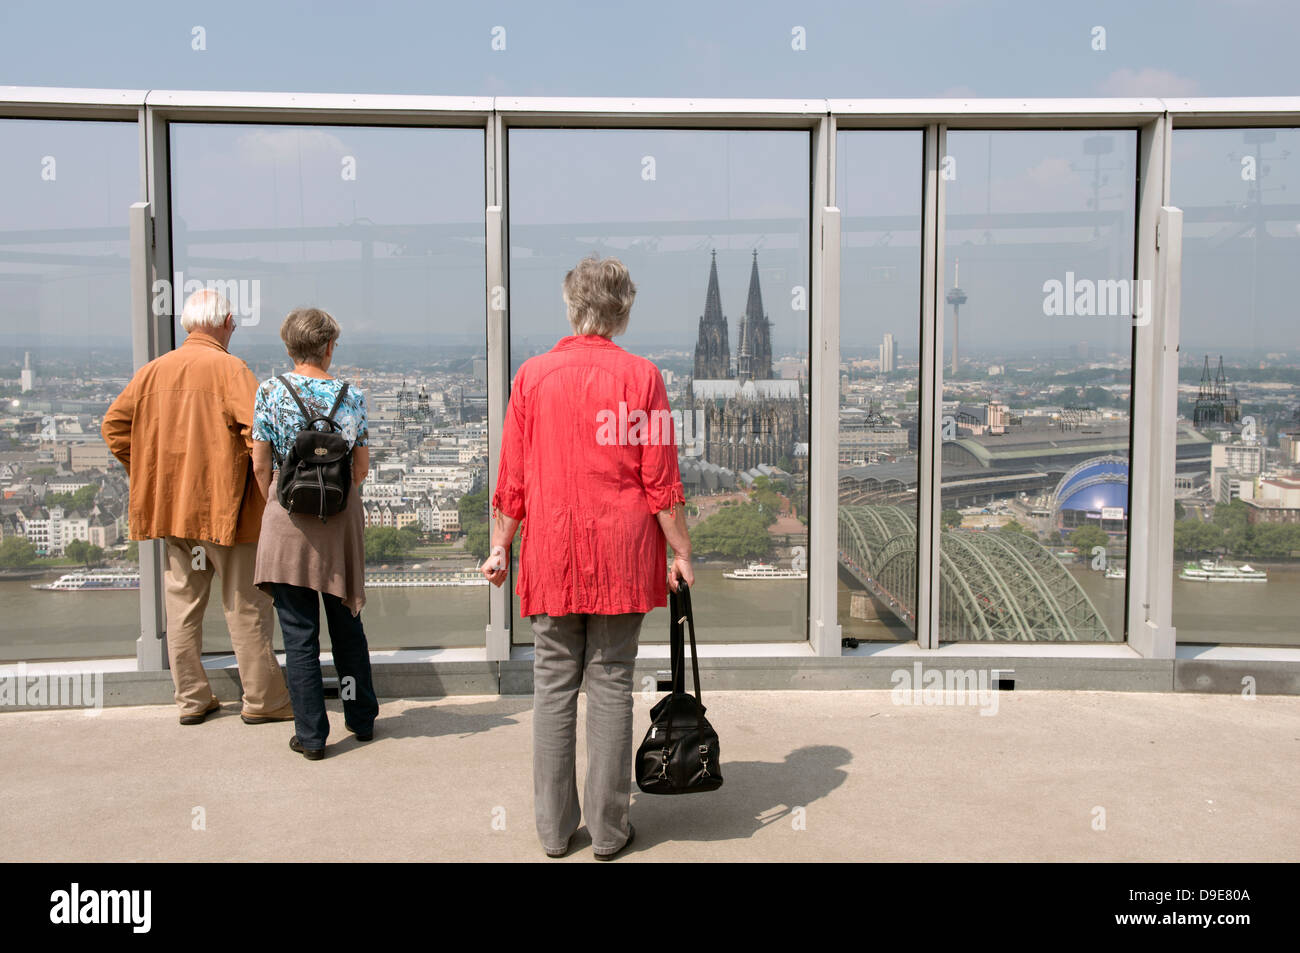 Sightseers on the observation deck of the Triangle building, Cologne, Germany. - Stock Image